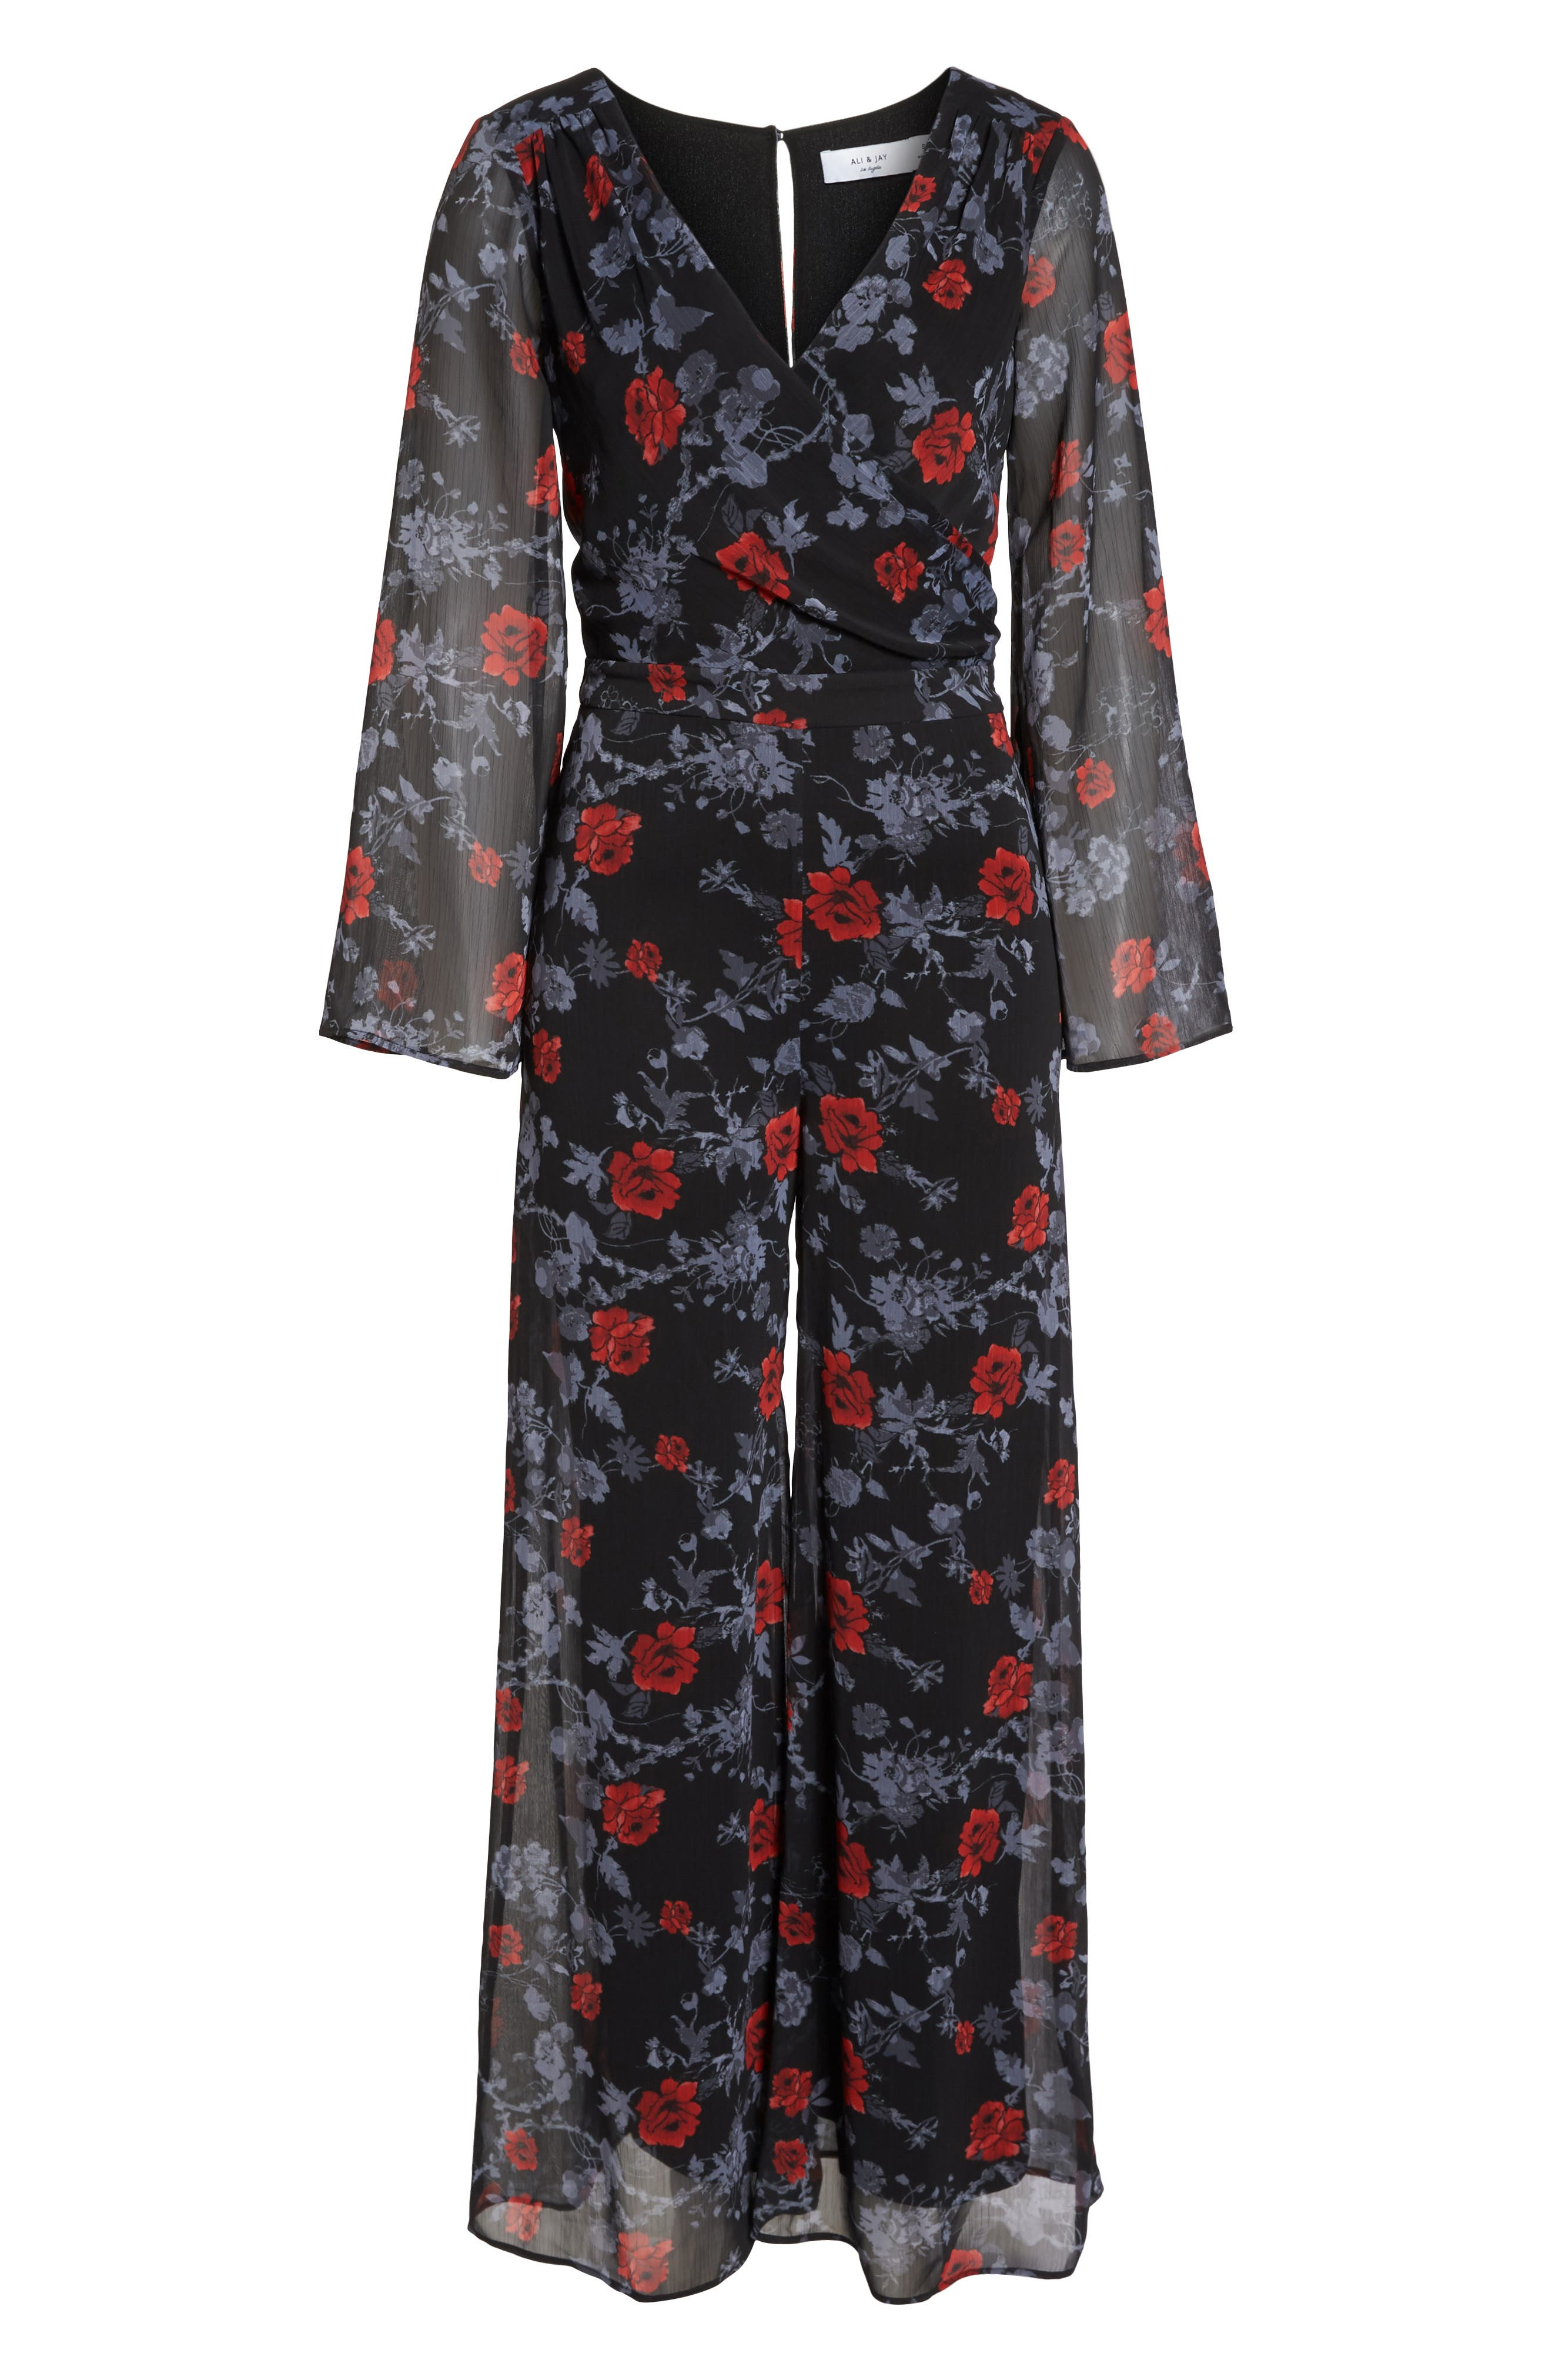 ALI & JAY, Only Wish Floral Jumpsuit, Alternate thumbnail 7, color, 001